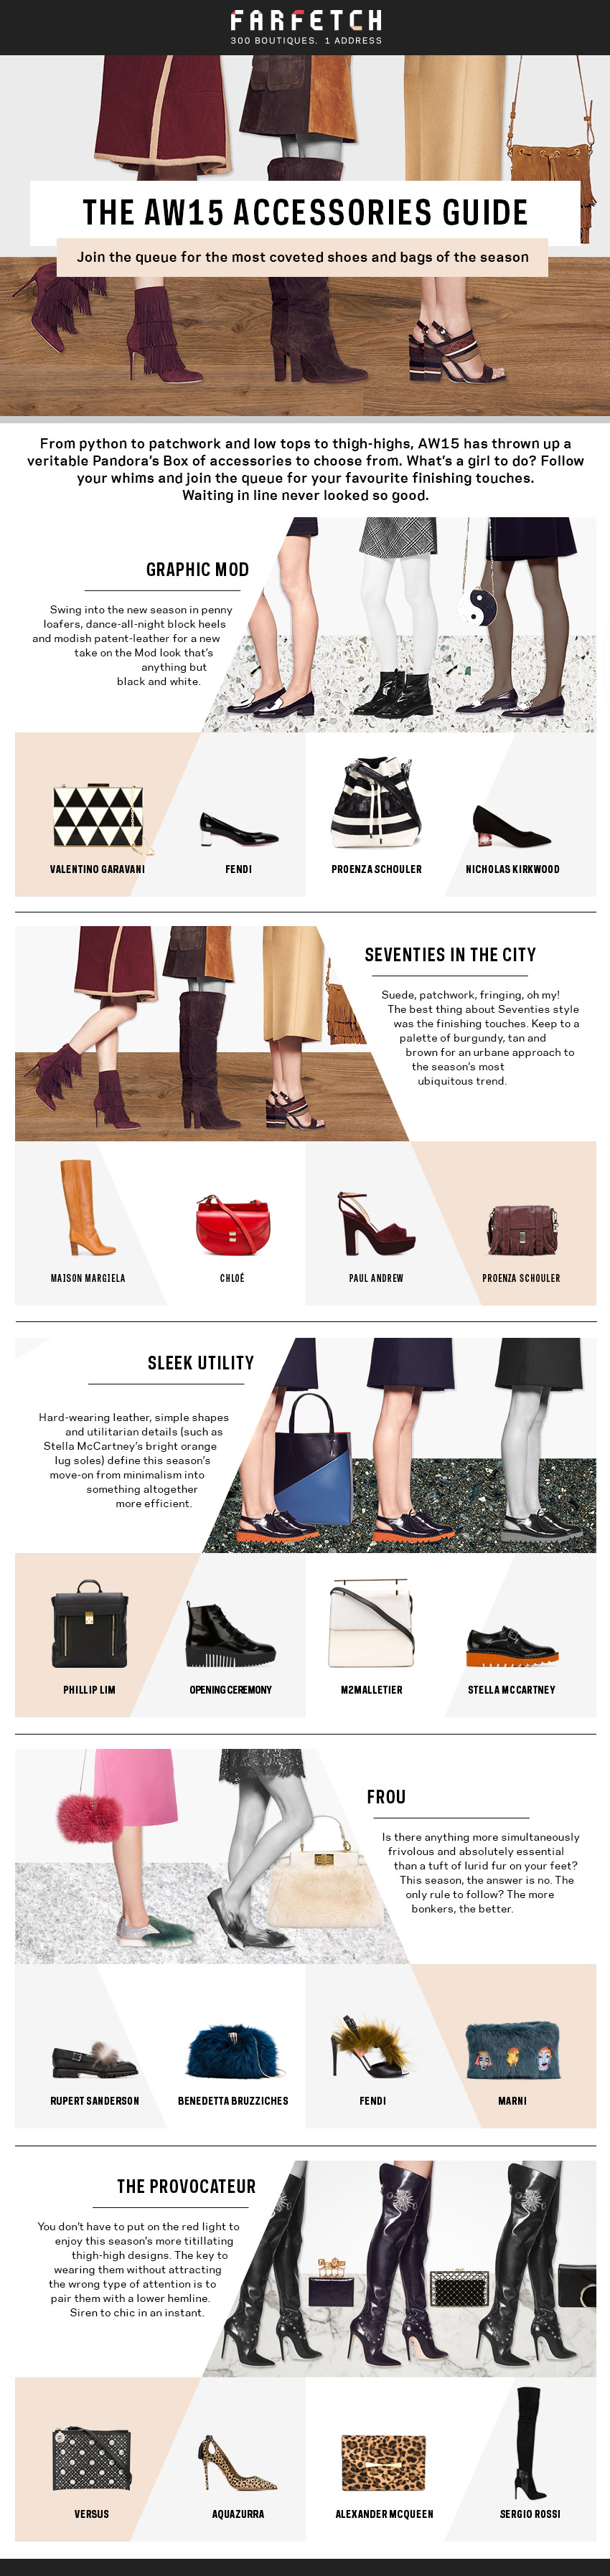 The AW15 Accessories Guide FINAL